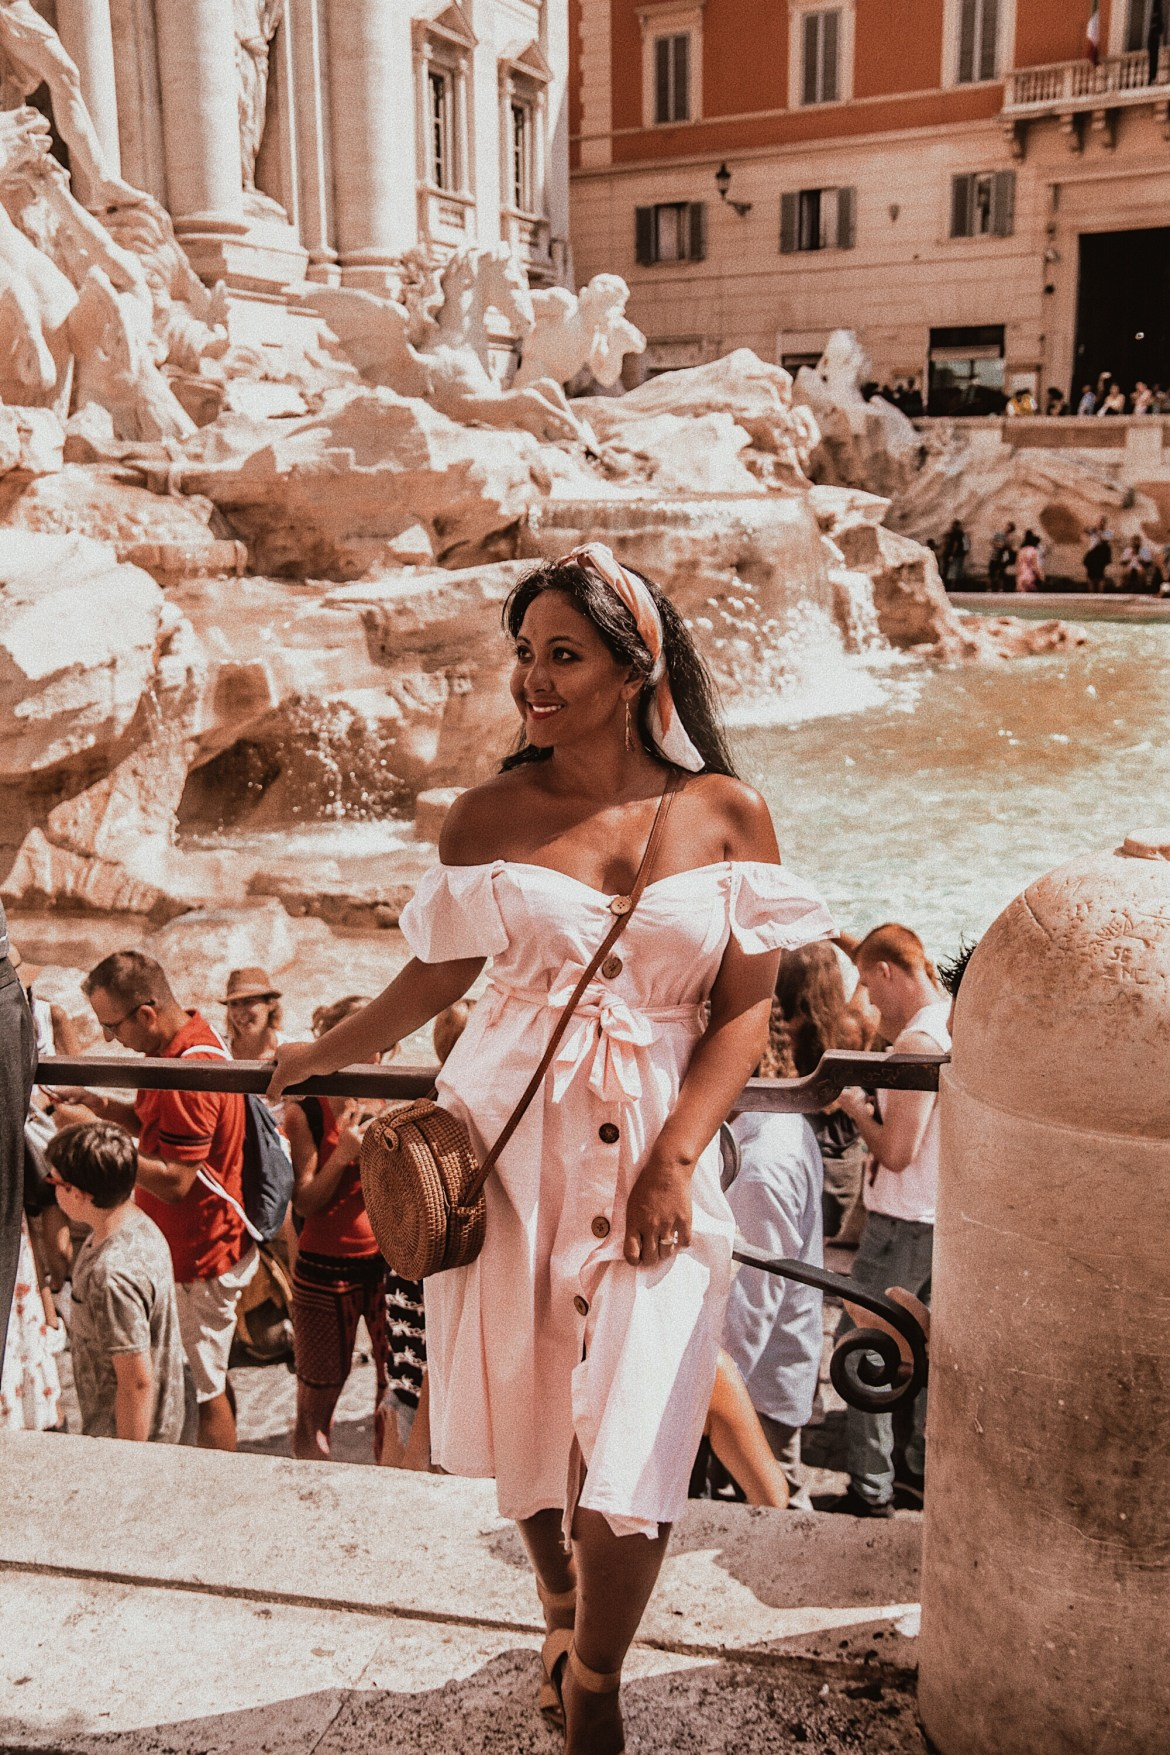 How-To-Wear-Off-Shoulder-Dress-Light-Blush-Pink-Button-Down-Dress-Rattan-Straw-Basket-Bag-Flat-Sandal-Headwrap-Paris-Chic-Style-Fashion-Lookbook-Street-Style-Rome-Italy-7